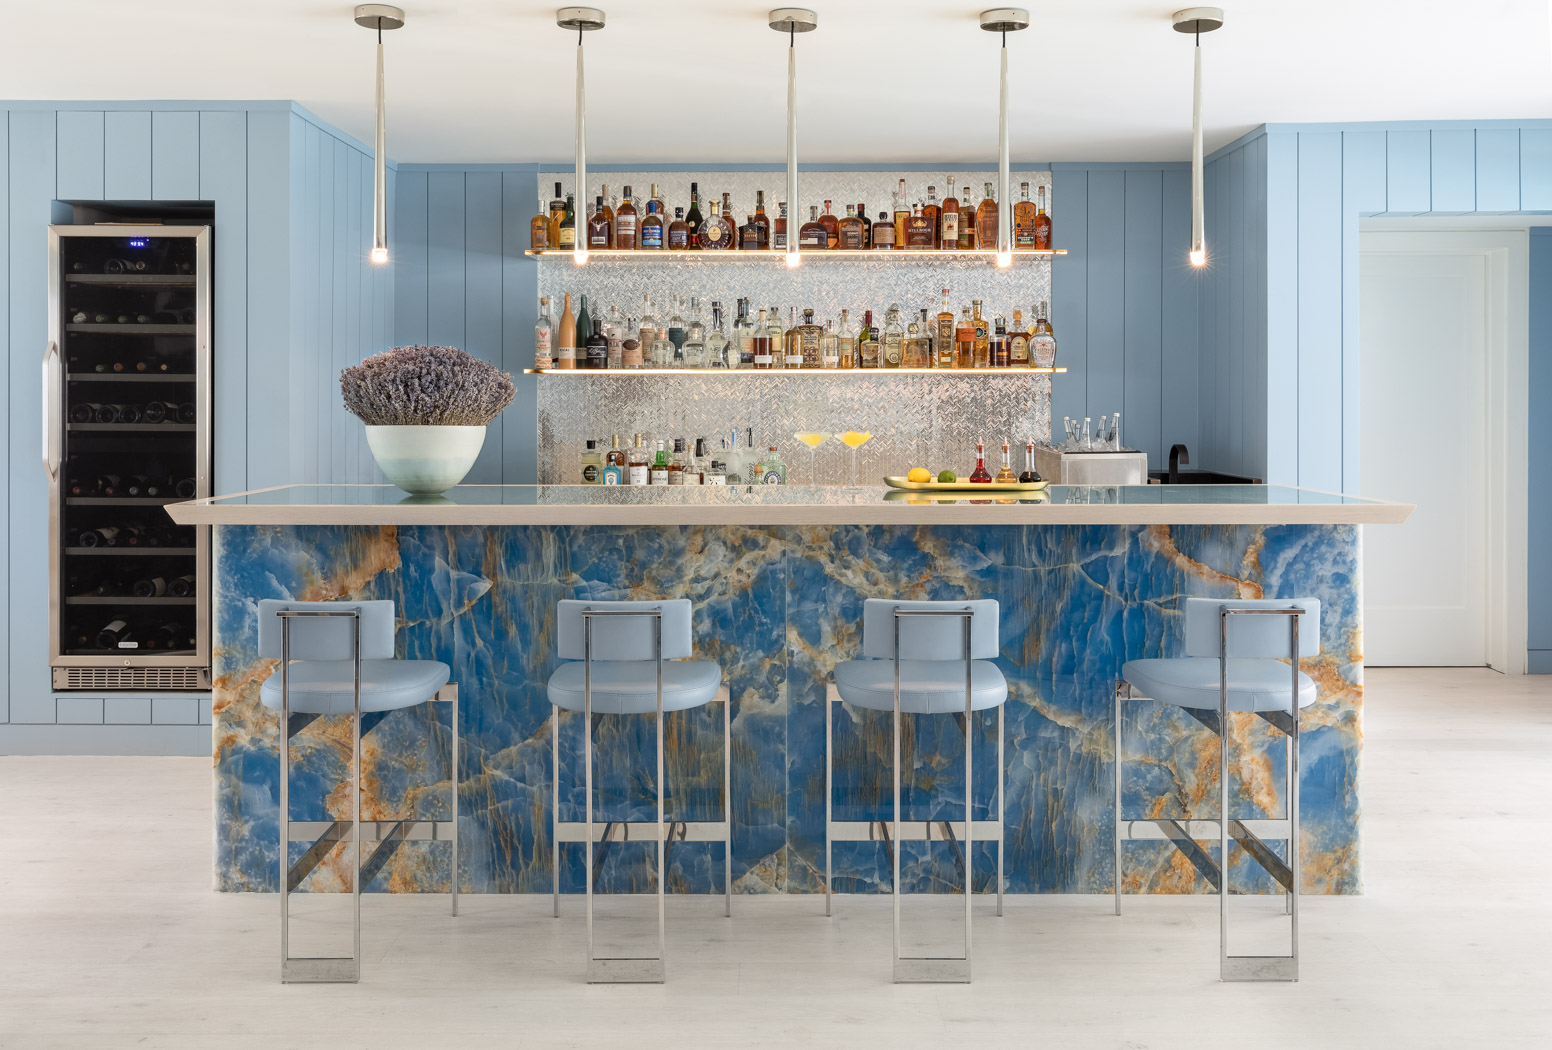 blue bar with barstools and lighting fixtures